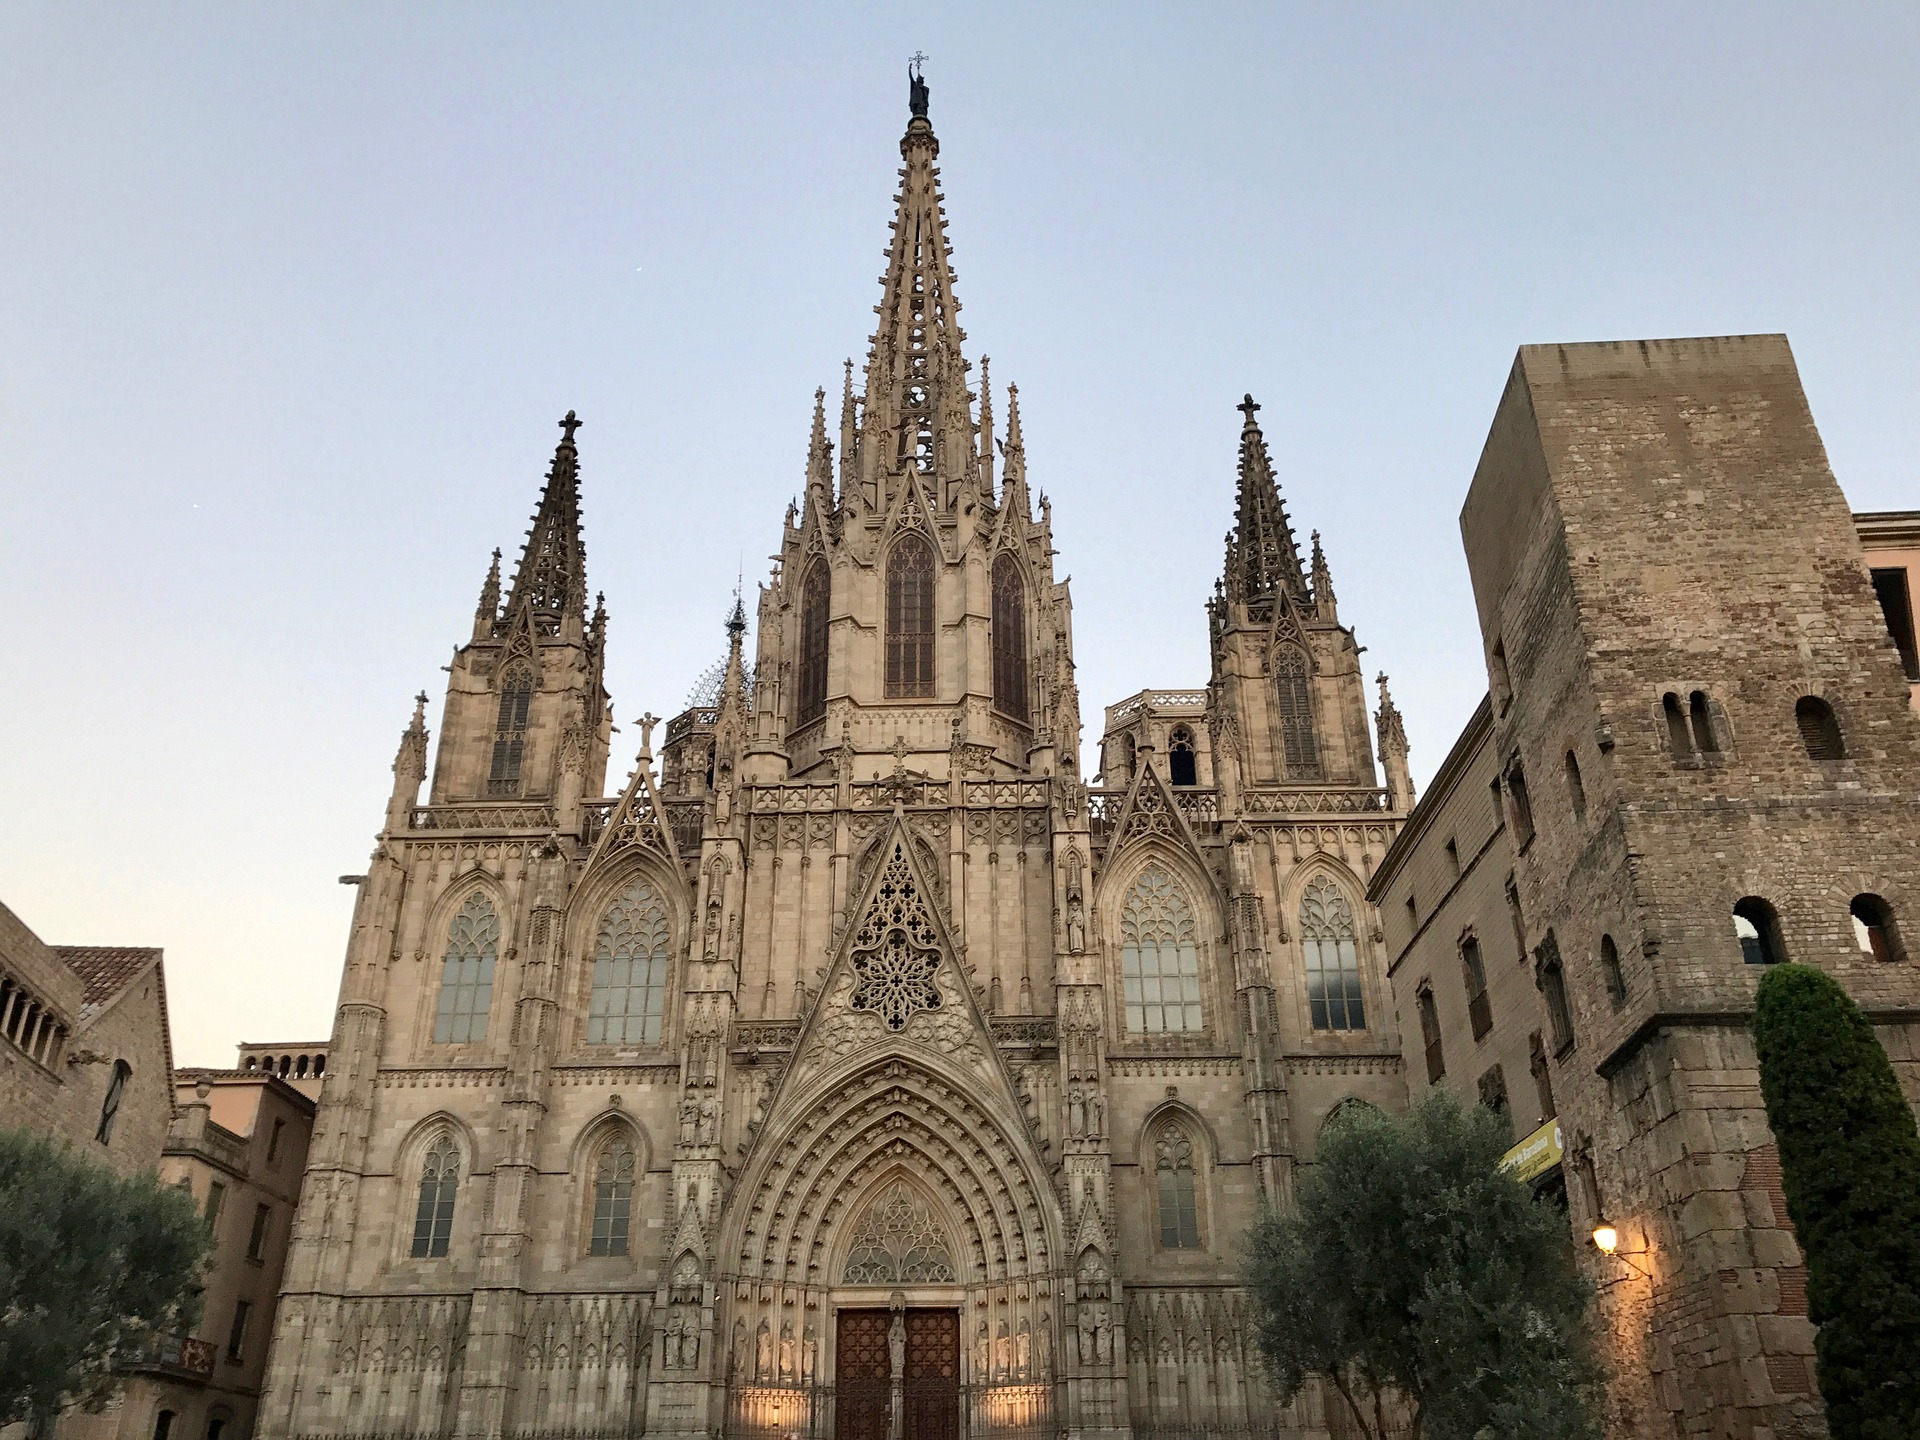 cathedral-2613670_1920.jpg?1567771321